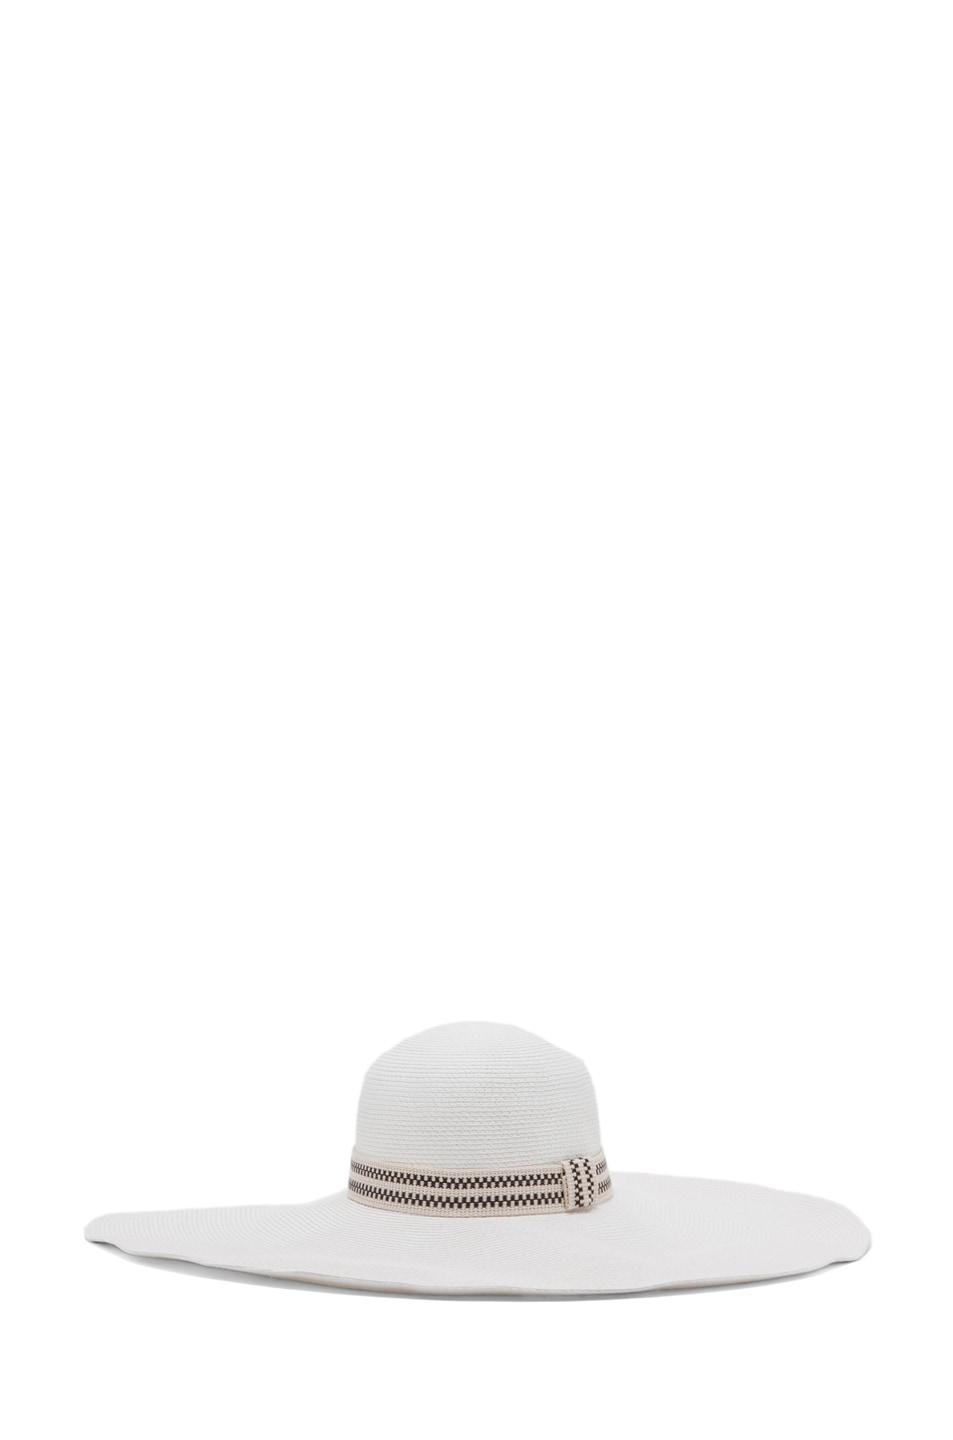 Image 1 of Chloe Sunhat in Ivory